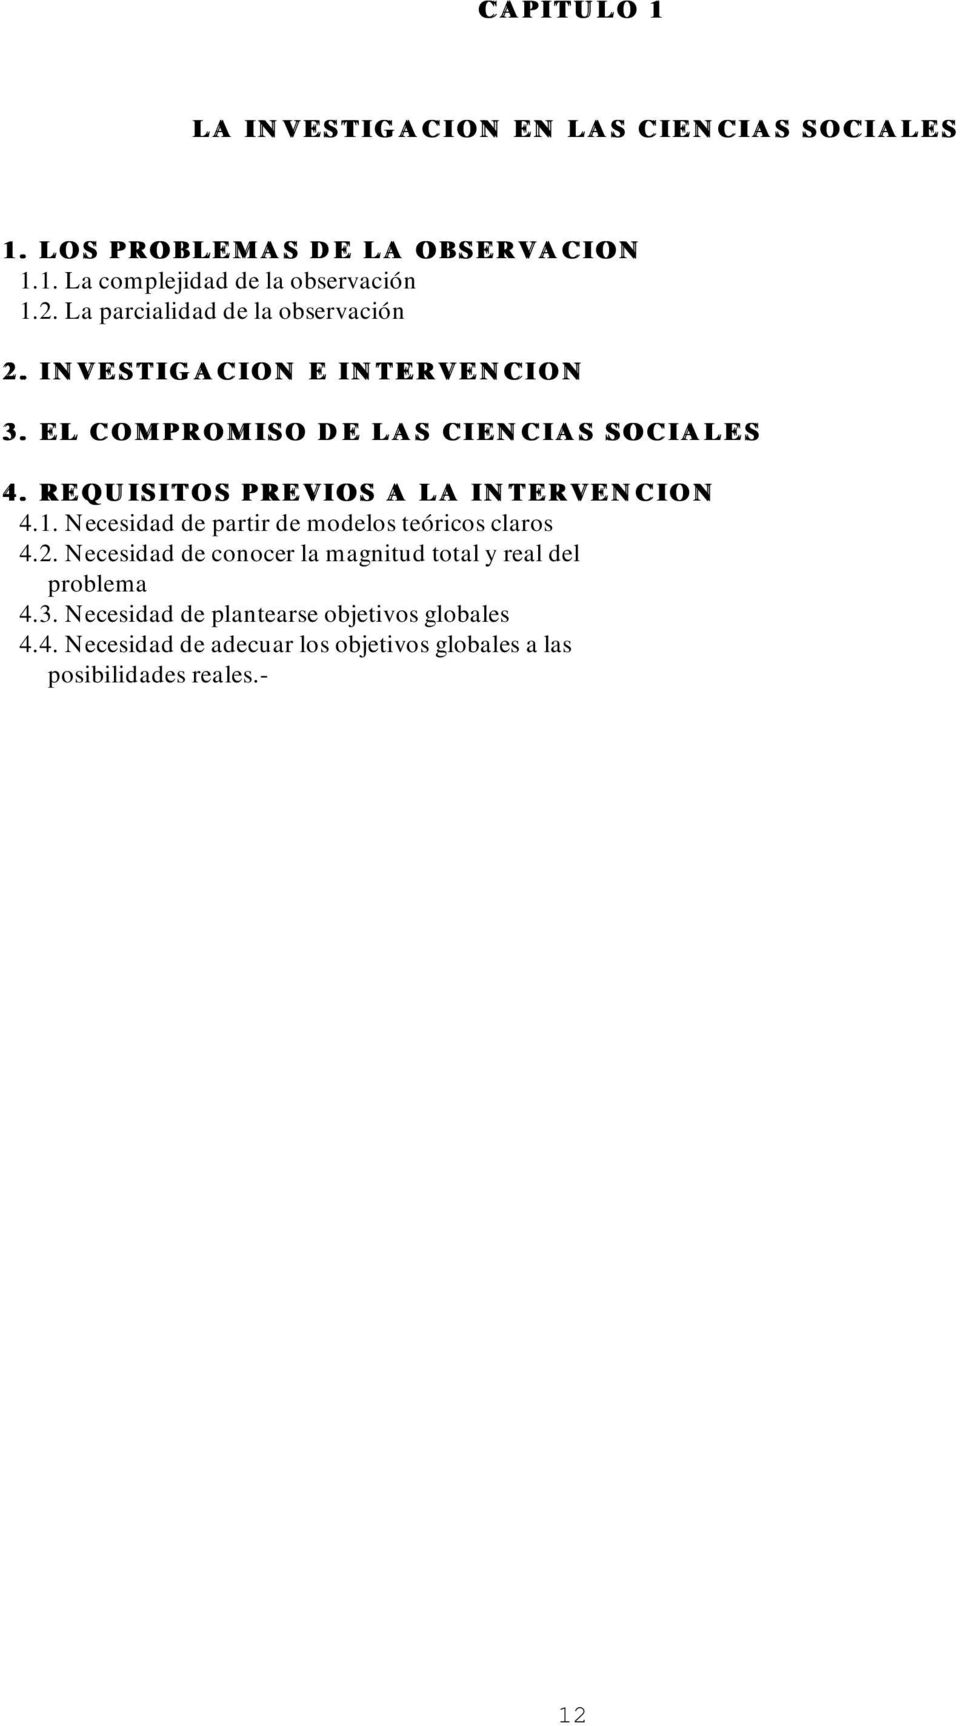 REQUISITOS PREVIOS A LA INTERVENCION 4. REQUISITOS PREVIOS A LA INTERVENCION 4.1. Necesidad de partir de modelos teóricos claros 4.2.